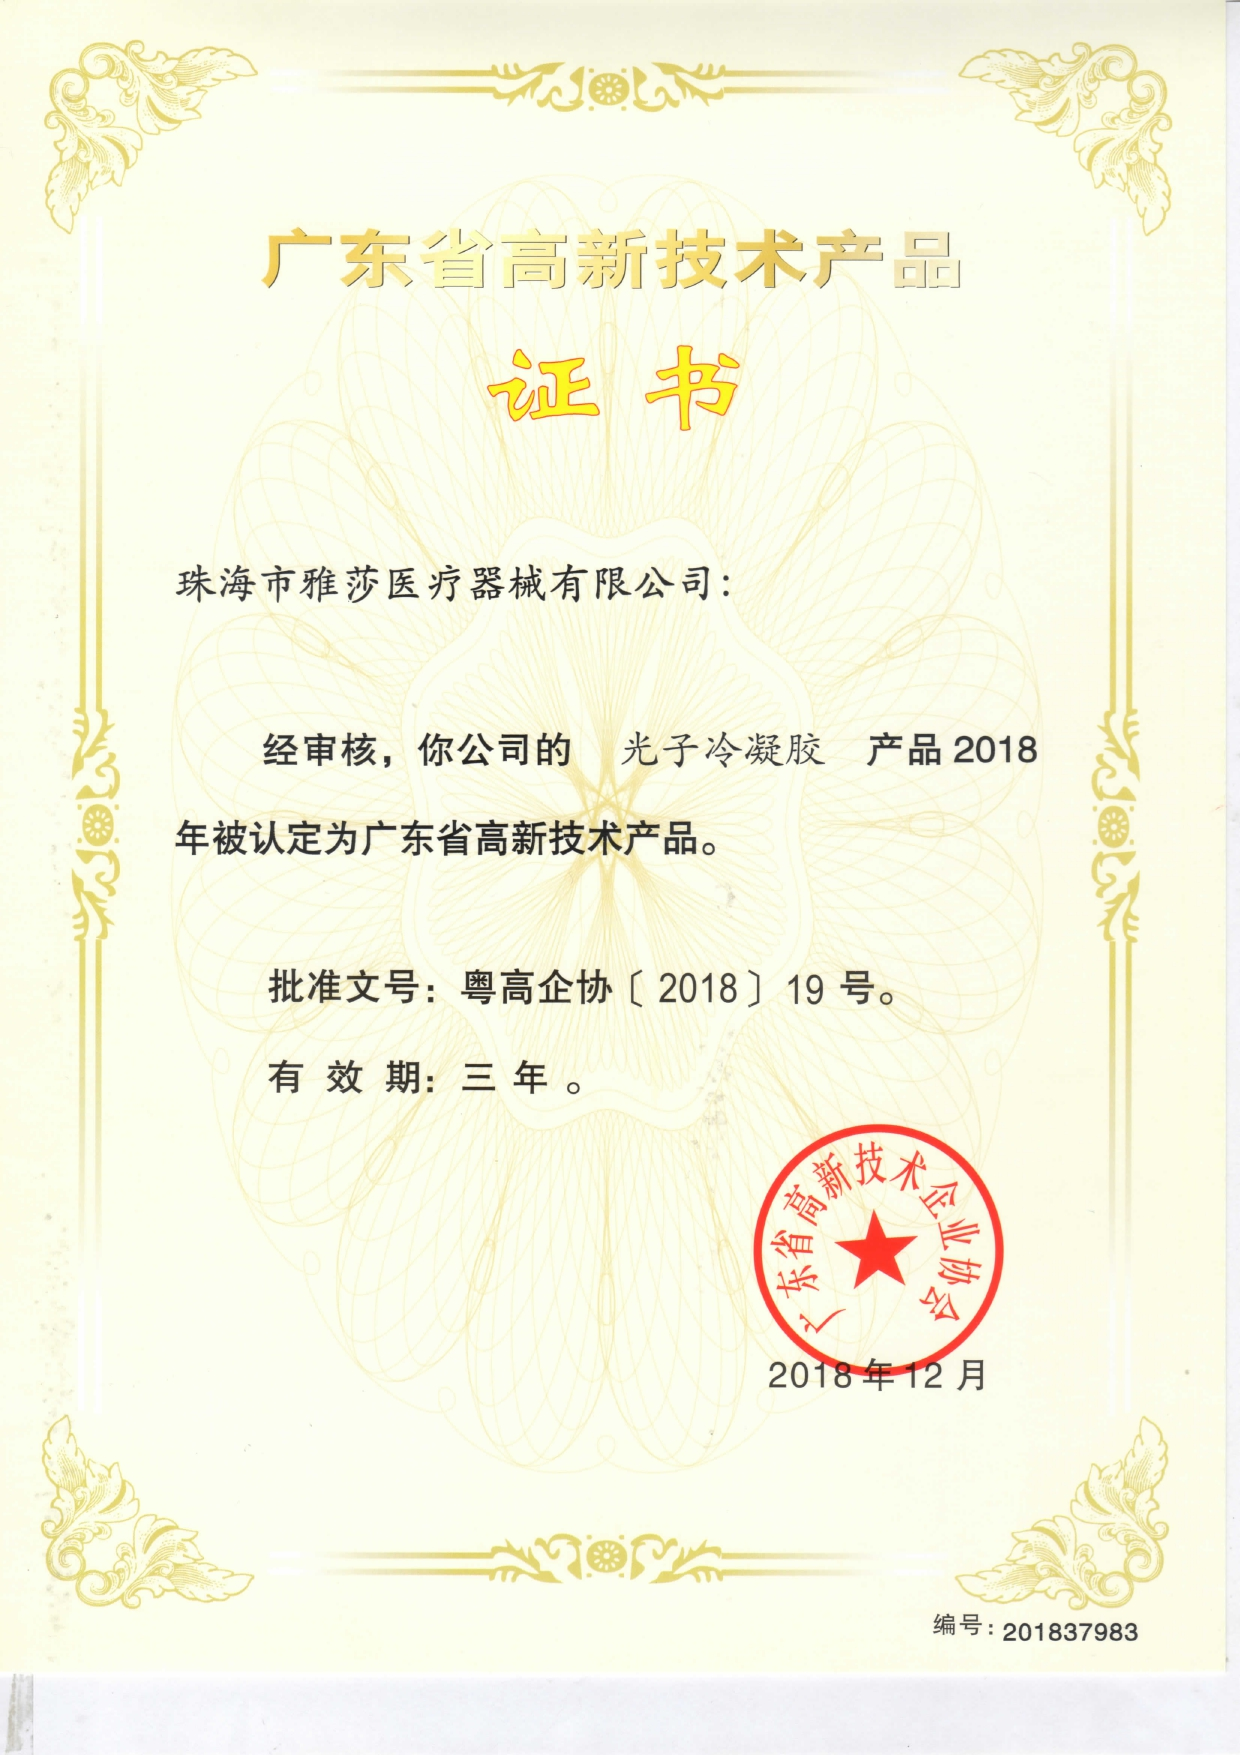 (Skin Barrier Repairing Gel) Certificate of Guangdong Province New High-Tech Product